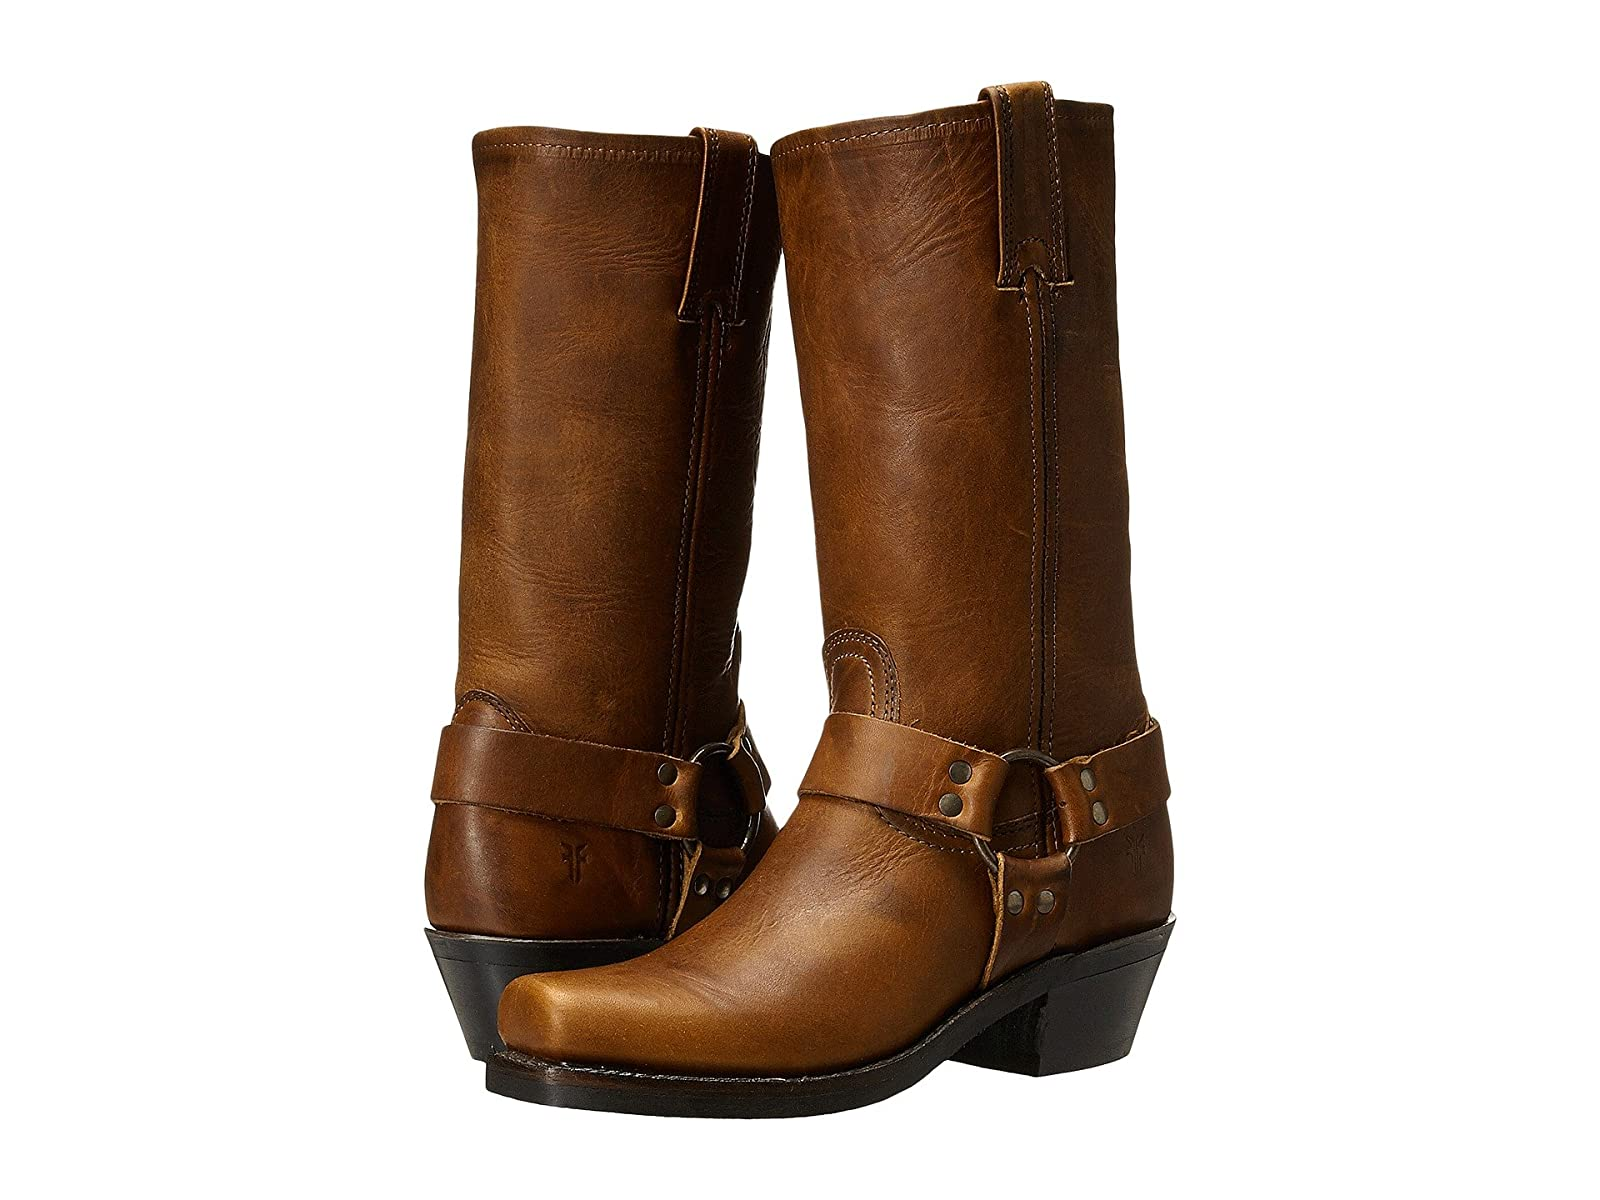 Frye Harness 12RAffordable and distinctive shoes